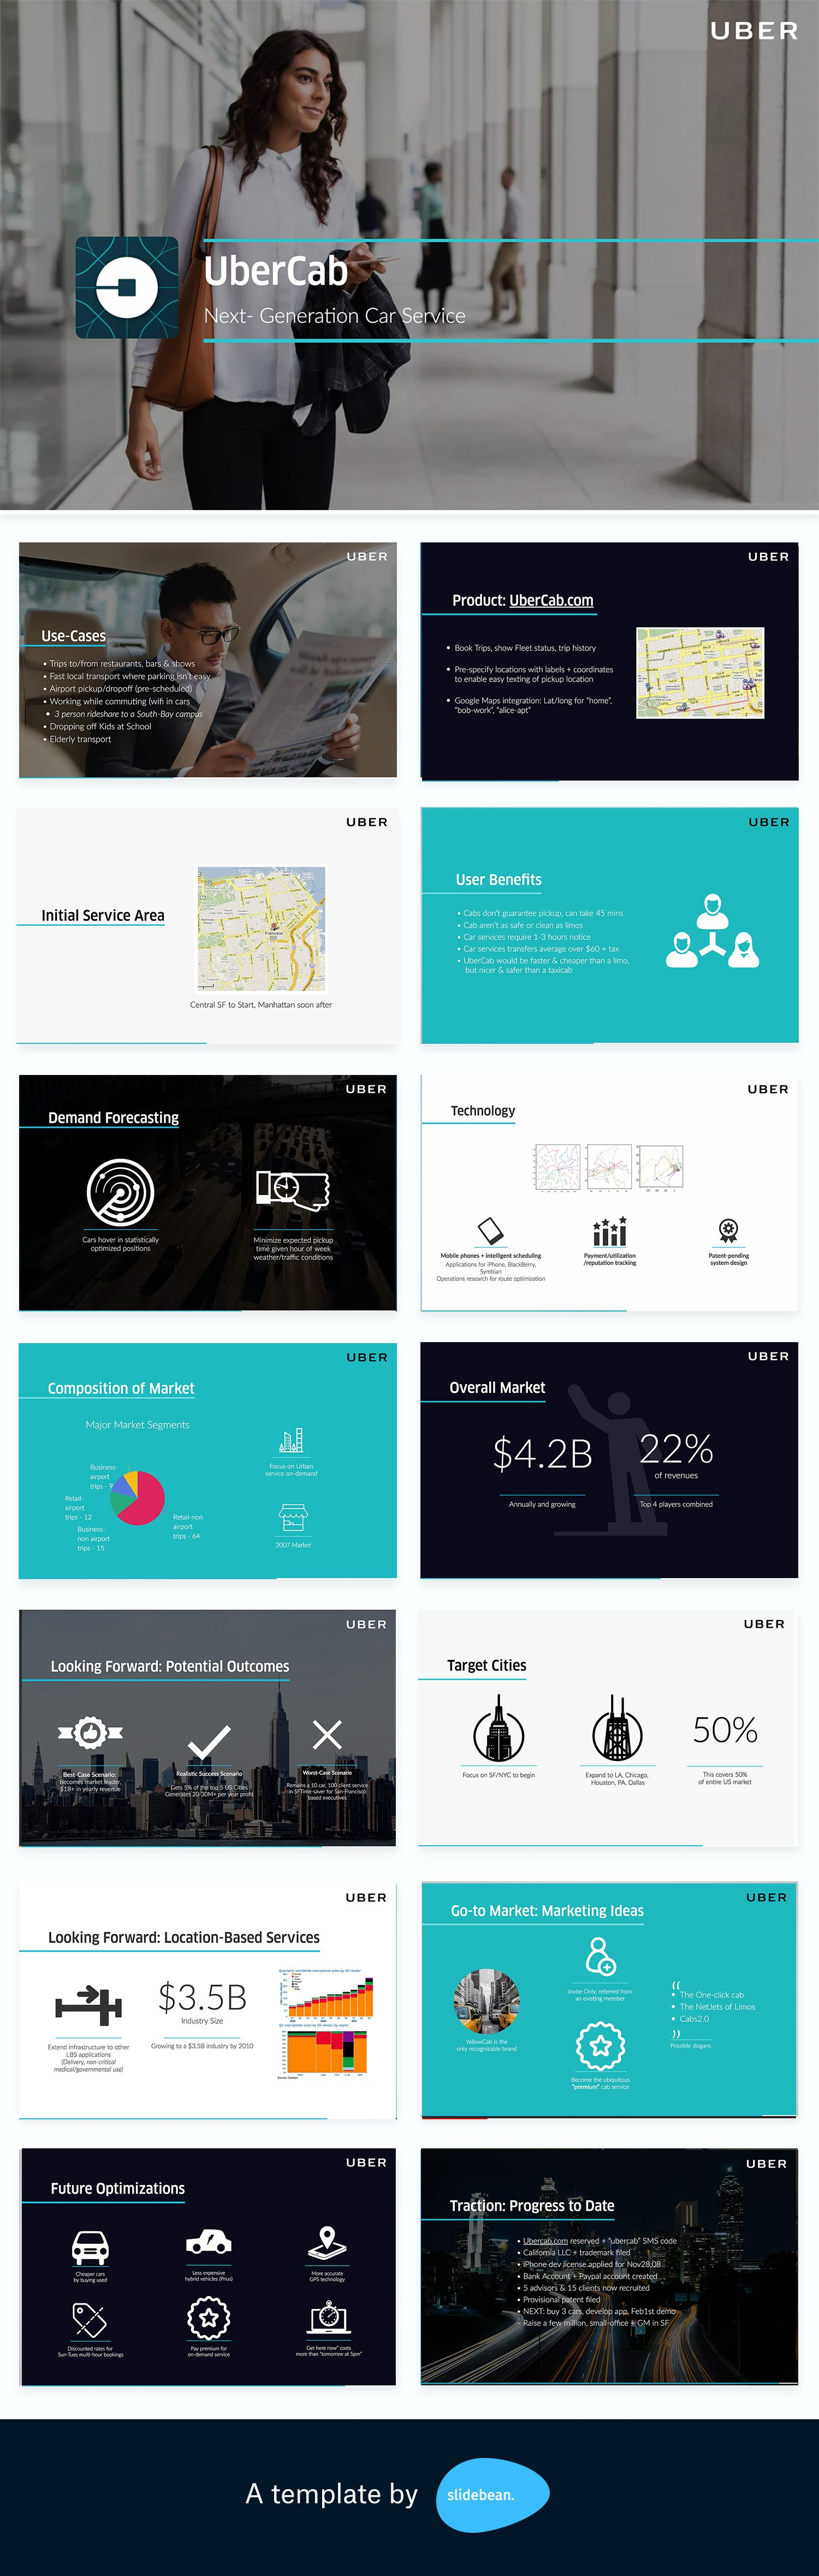 Uber Pitch Deck Template Pdf And Ppt Download Free Presentation